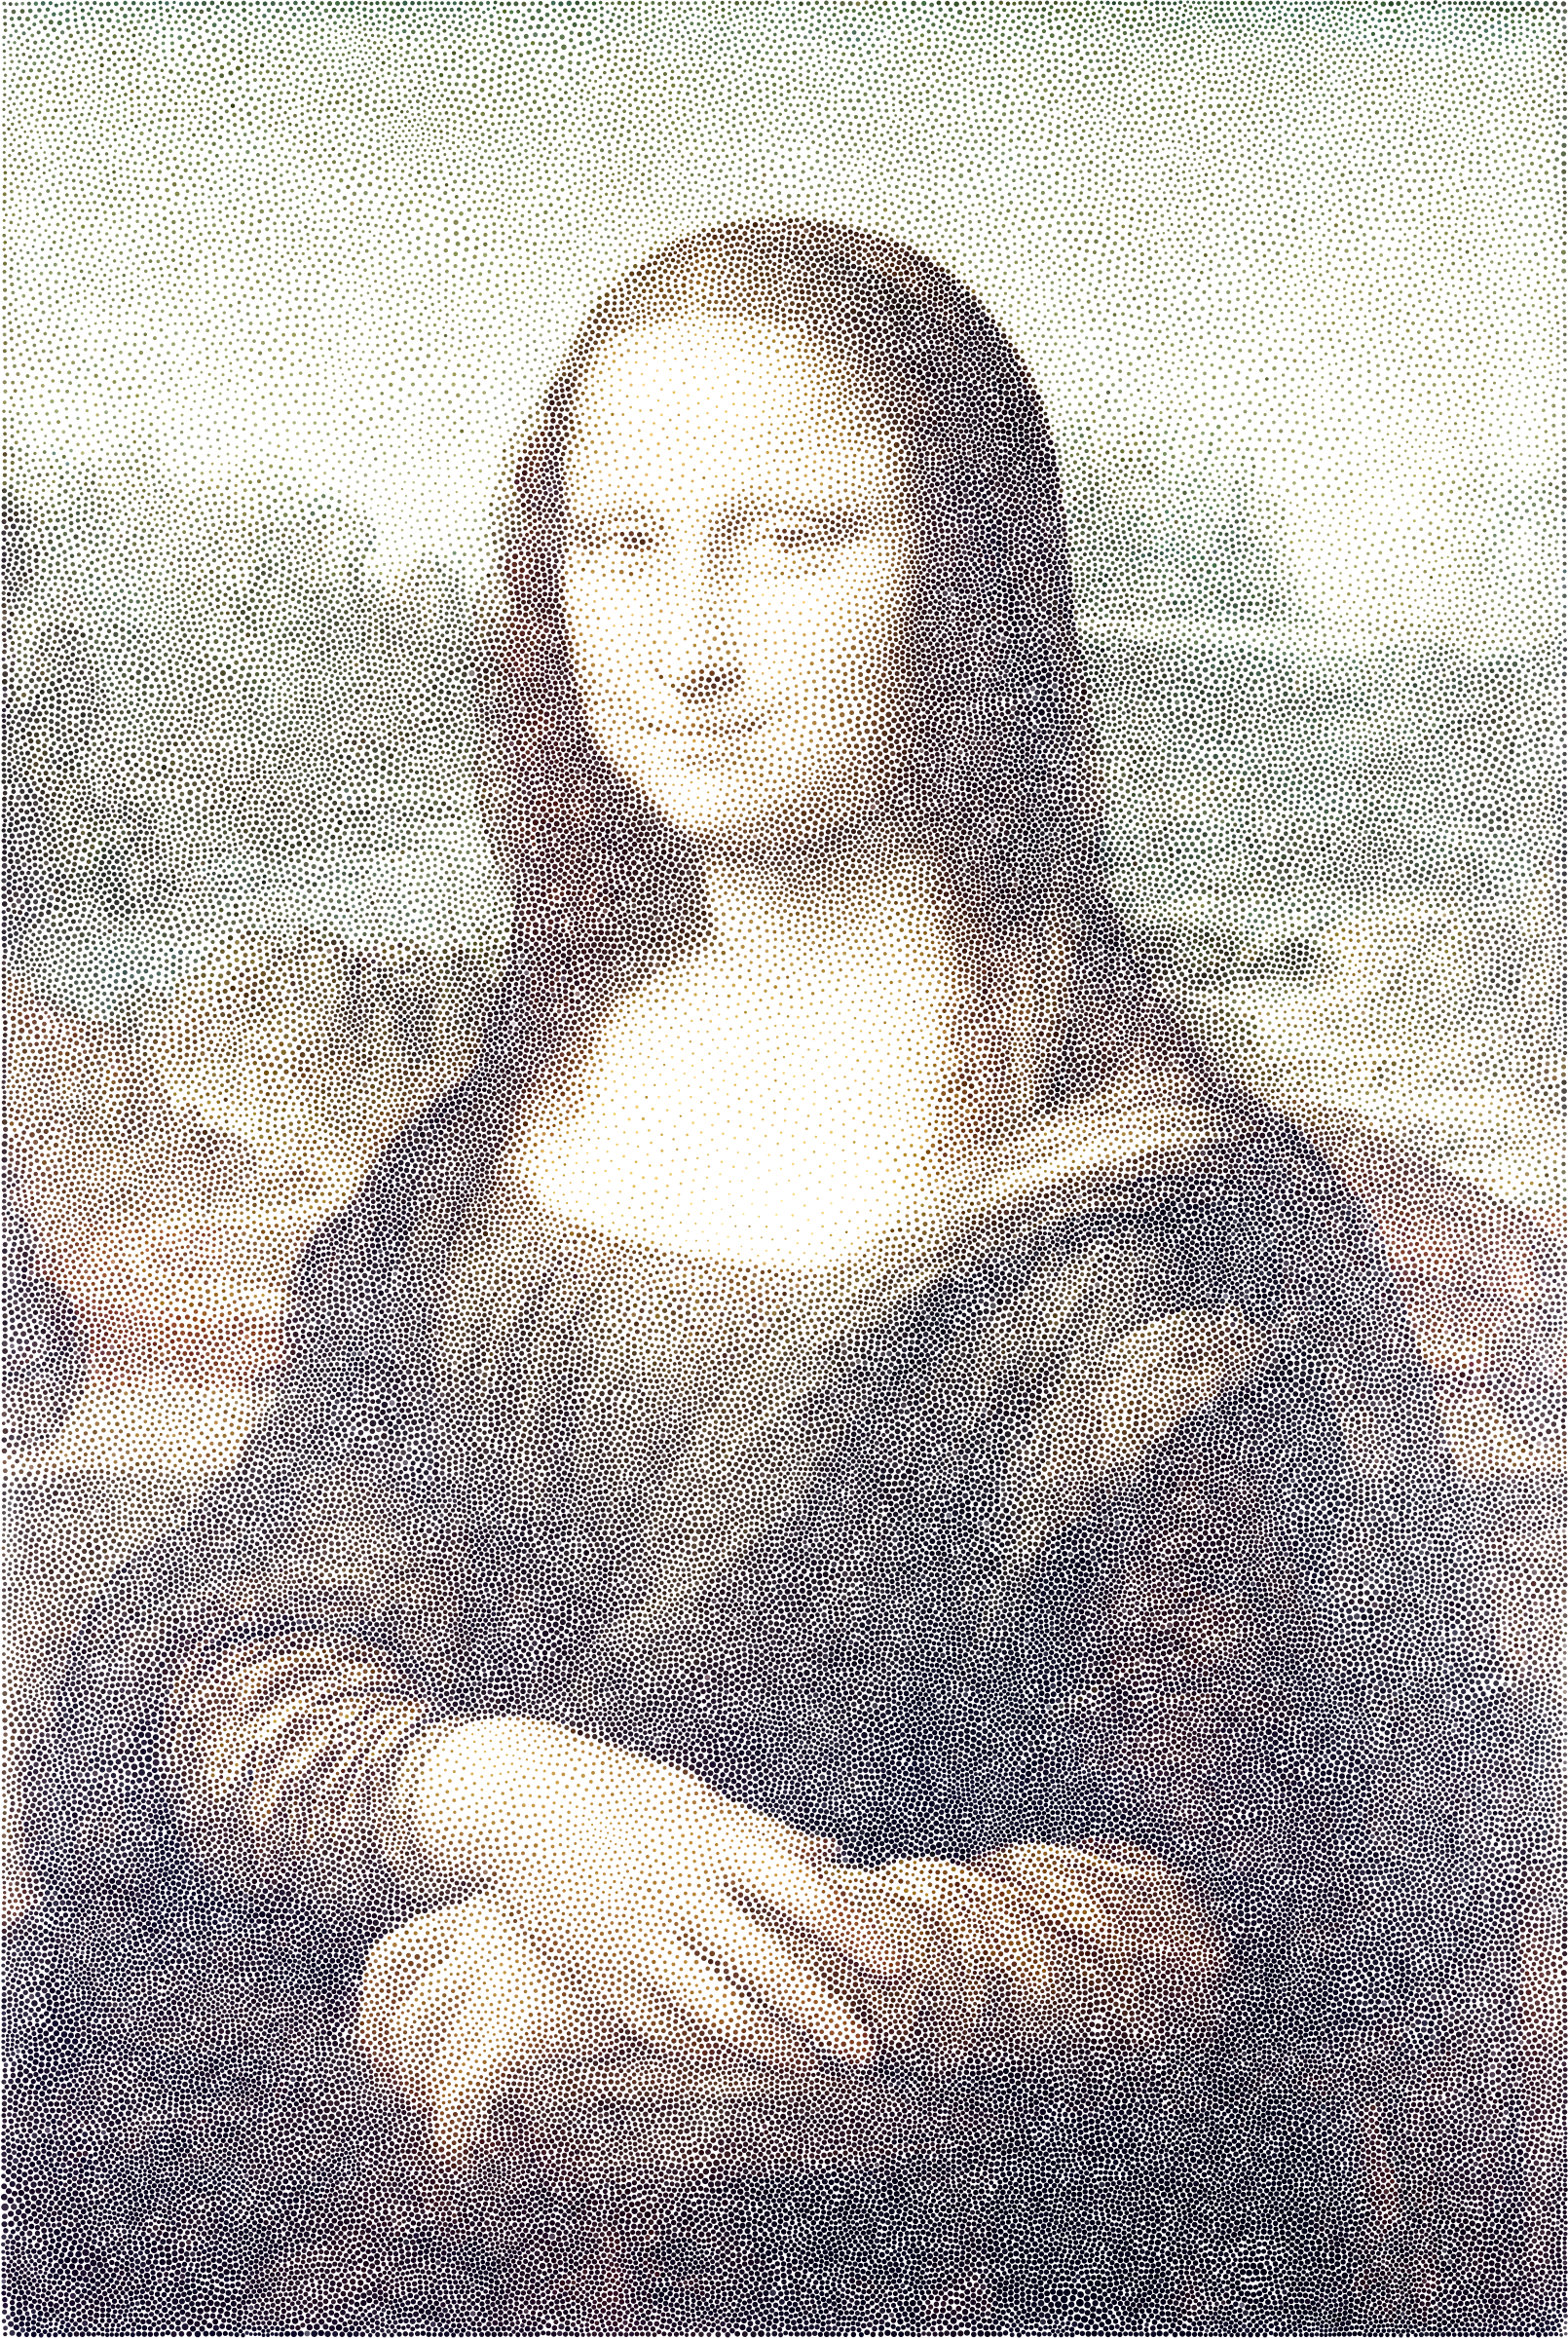 Mona Lisa Stippled by GDJ